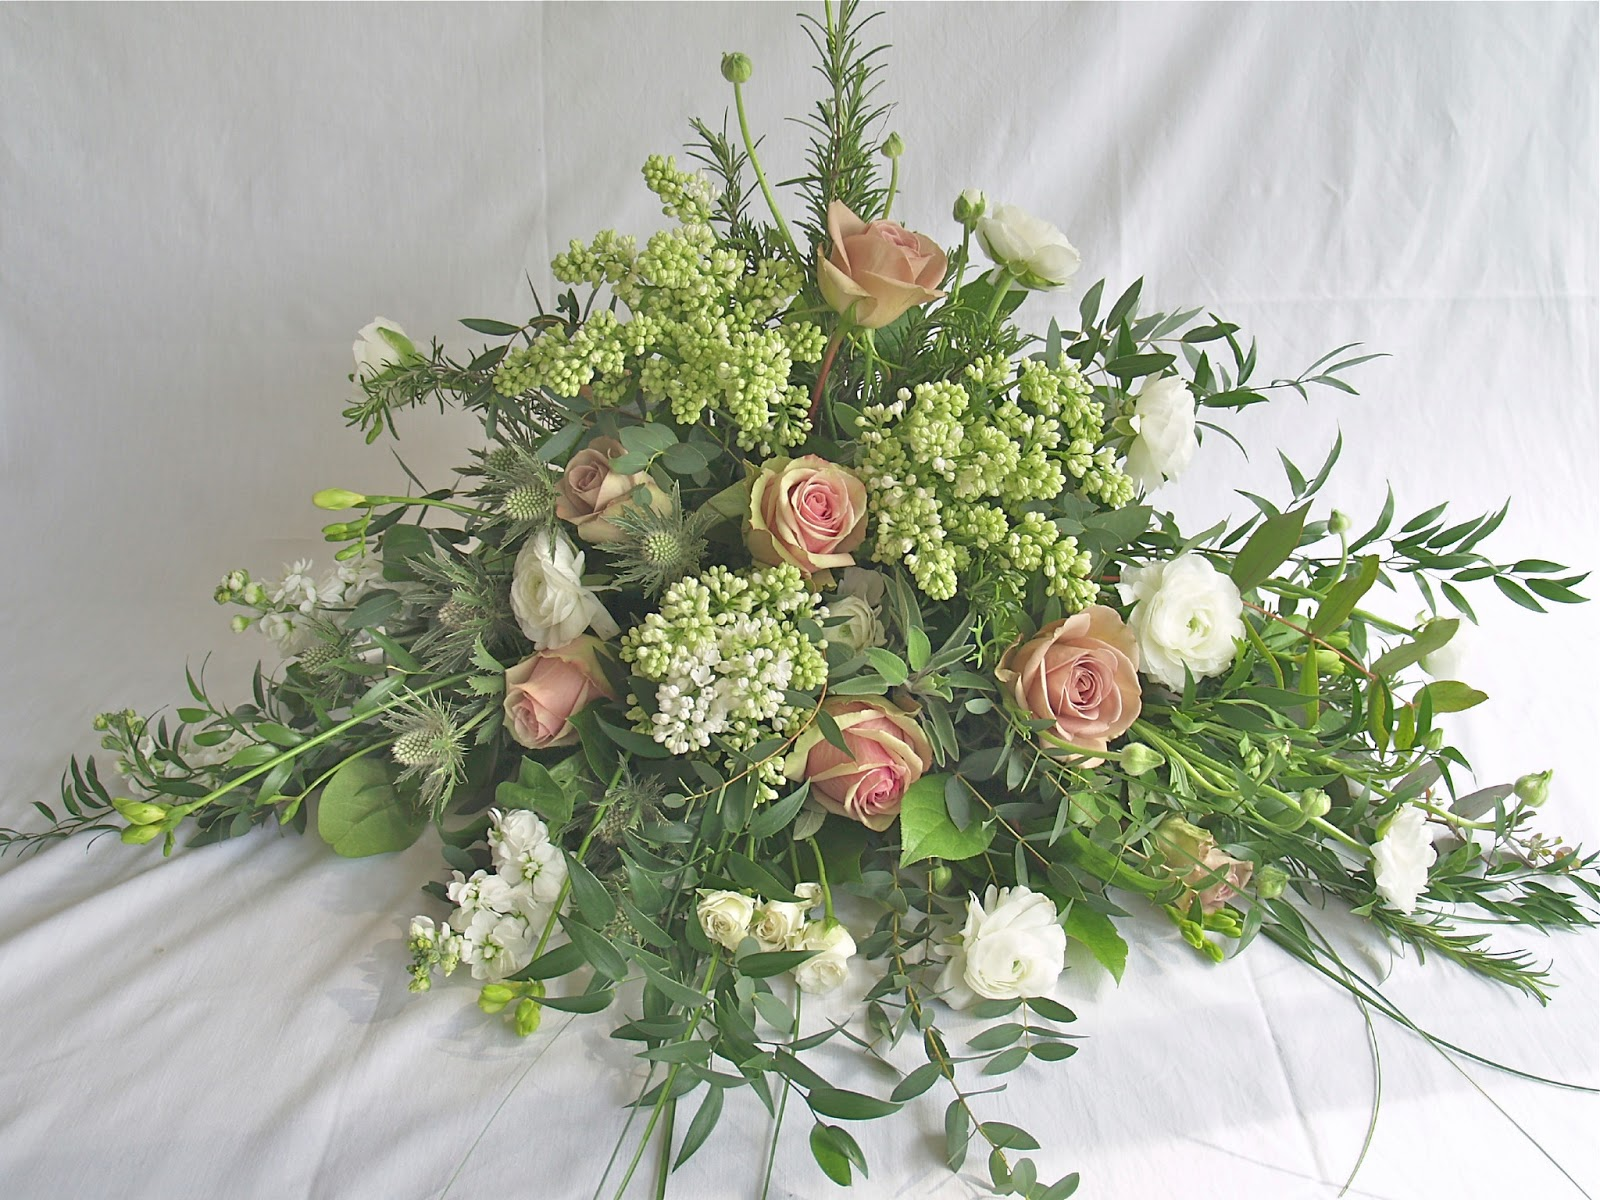 Wedding Flowers In Season In March : March wedding flowers galleryhip the hippest pics